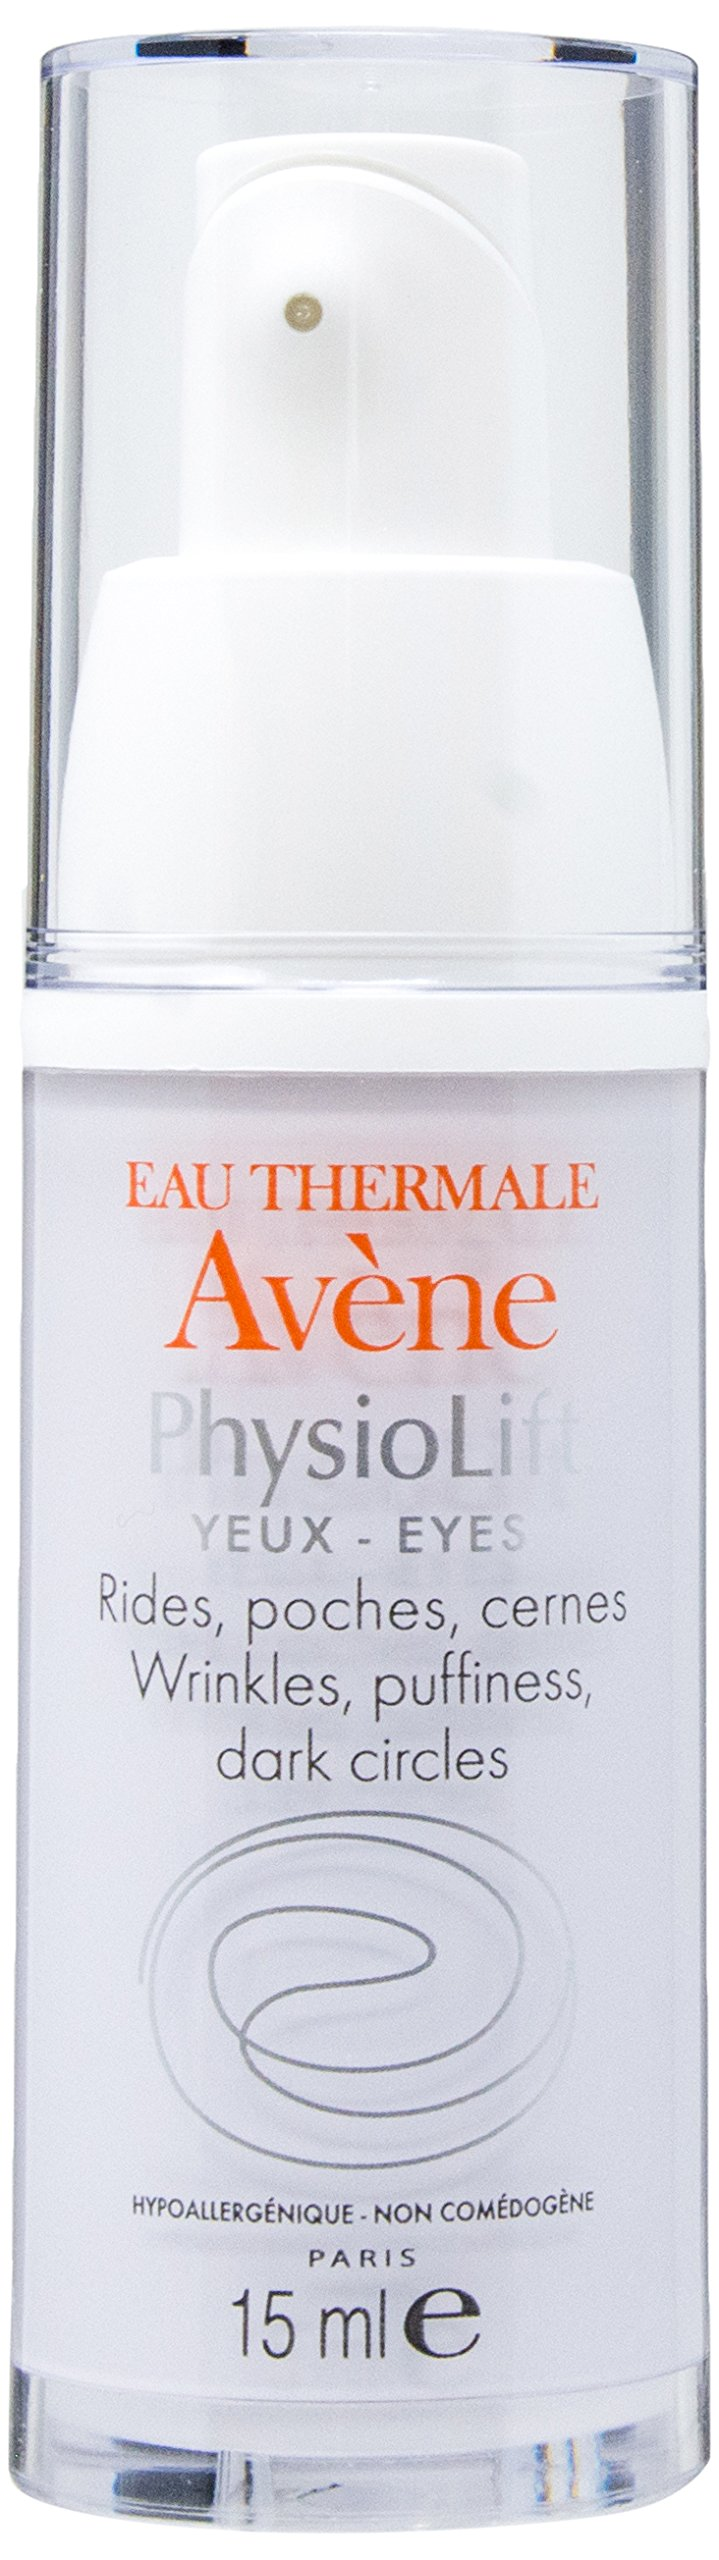 Eau Thermale Avène Physiolift Eyes Wrinkles, Puffiness, Dark Circles Cream, 0.5 fl. oz. by Eau Thermale Avène (Image #1)